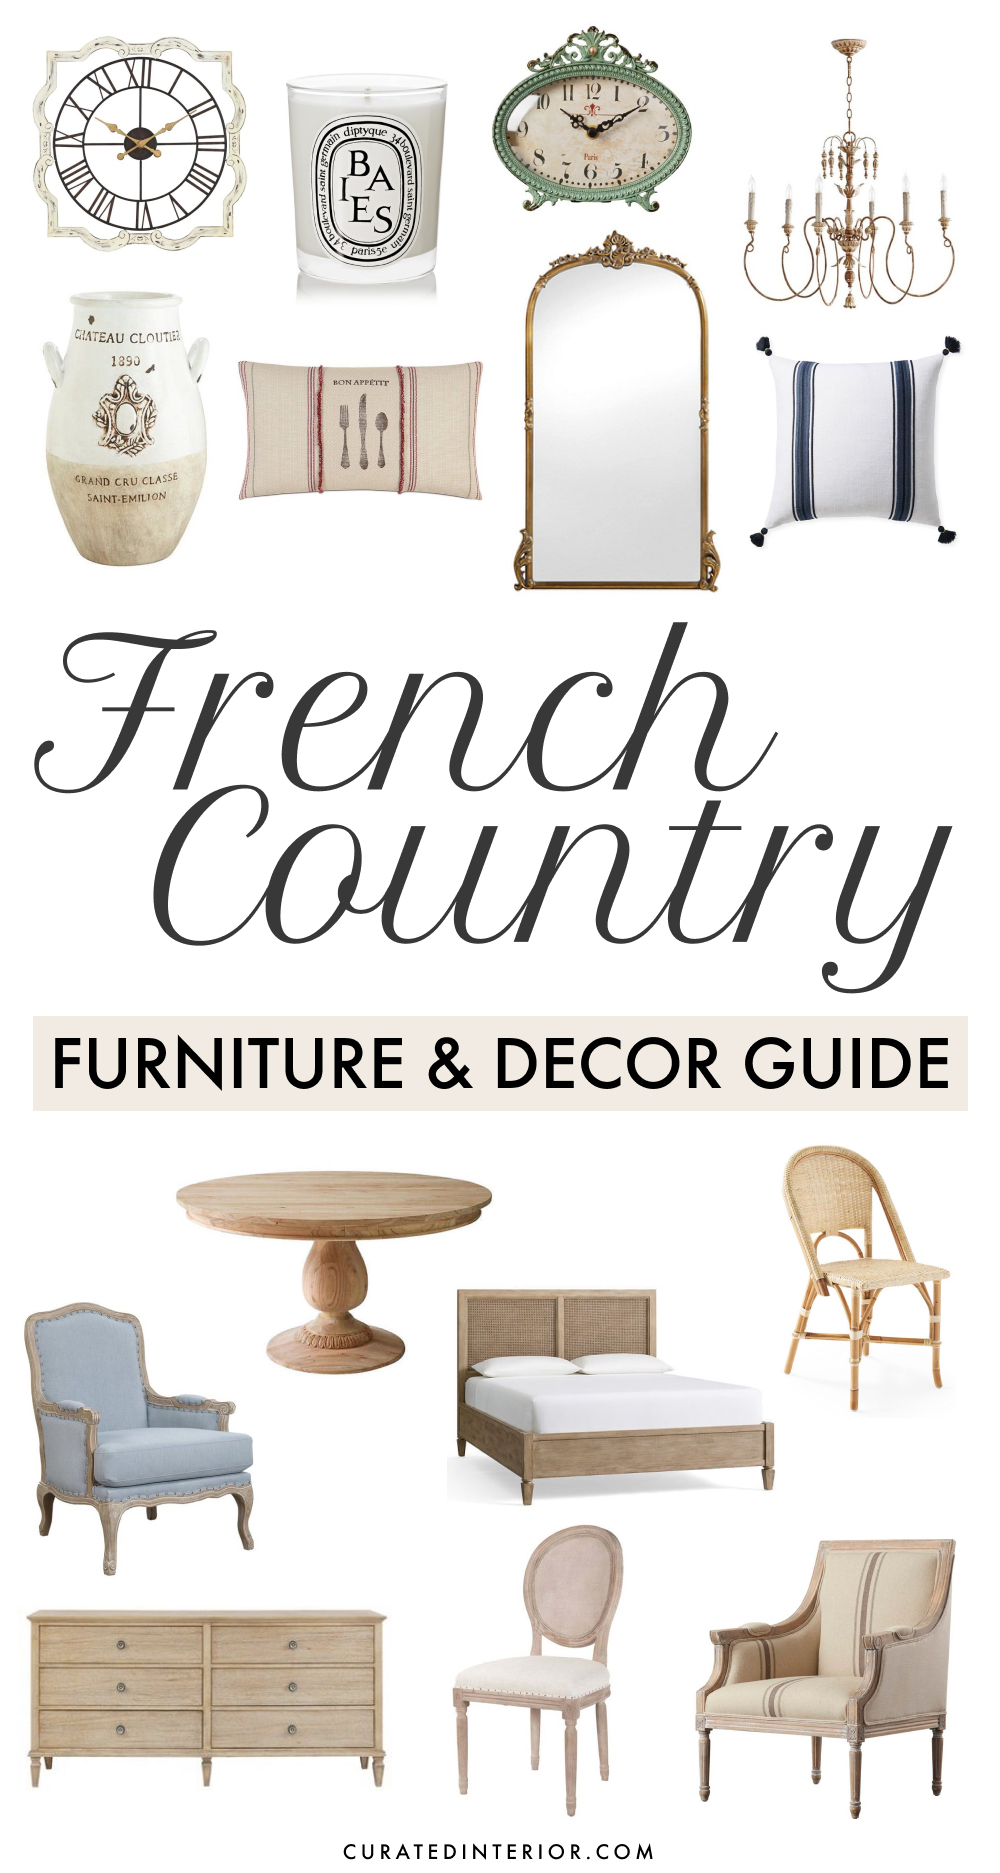 French Country Furniture and Decor Guide